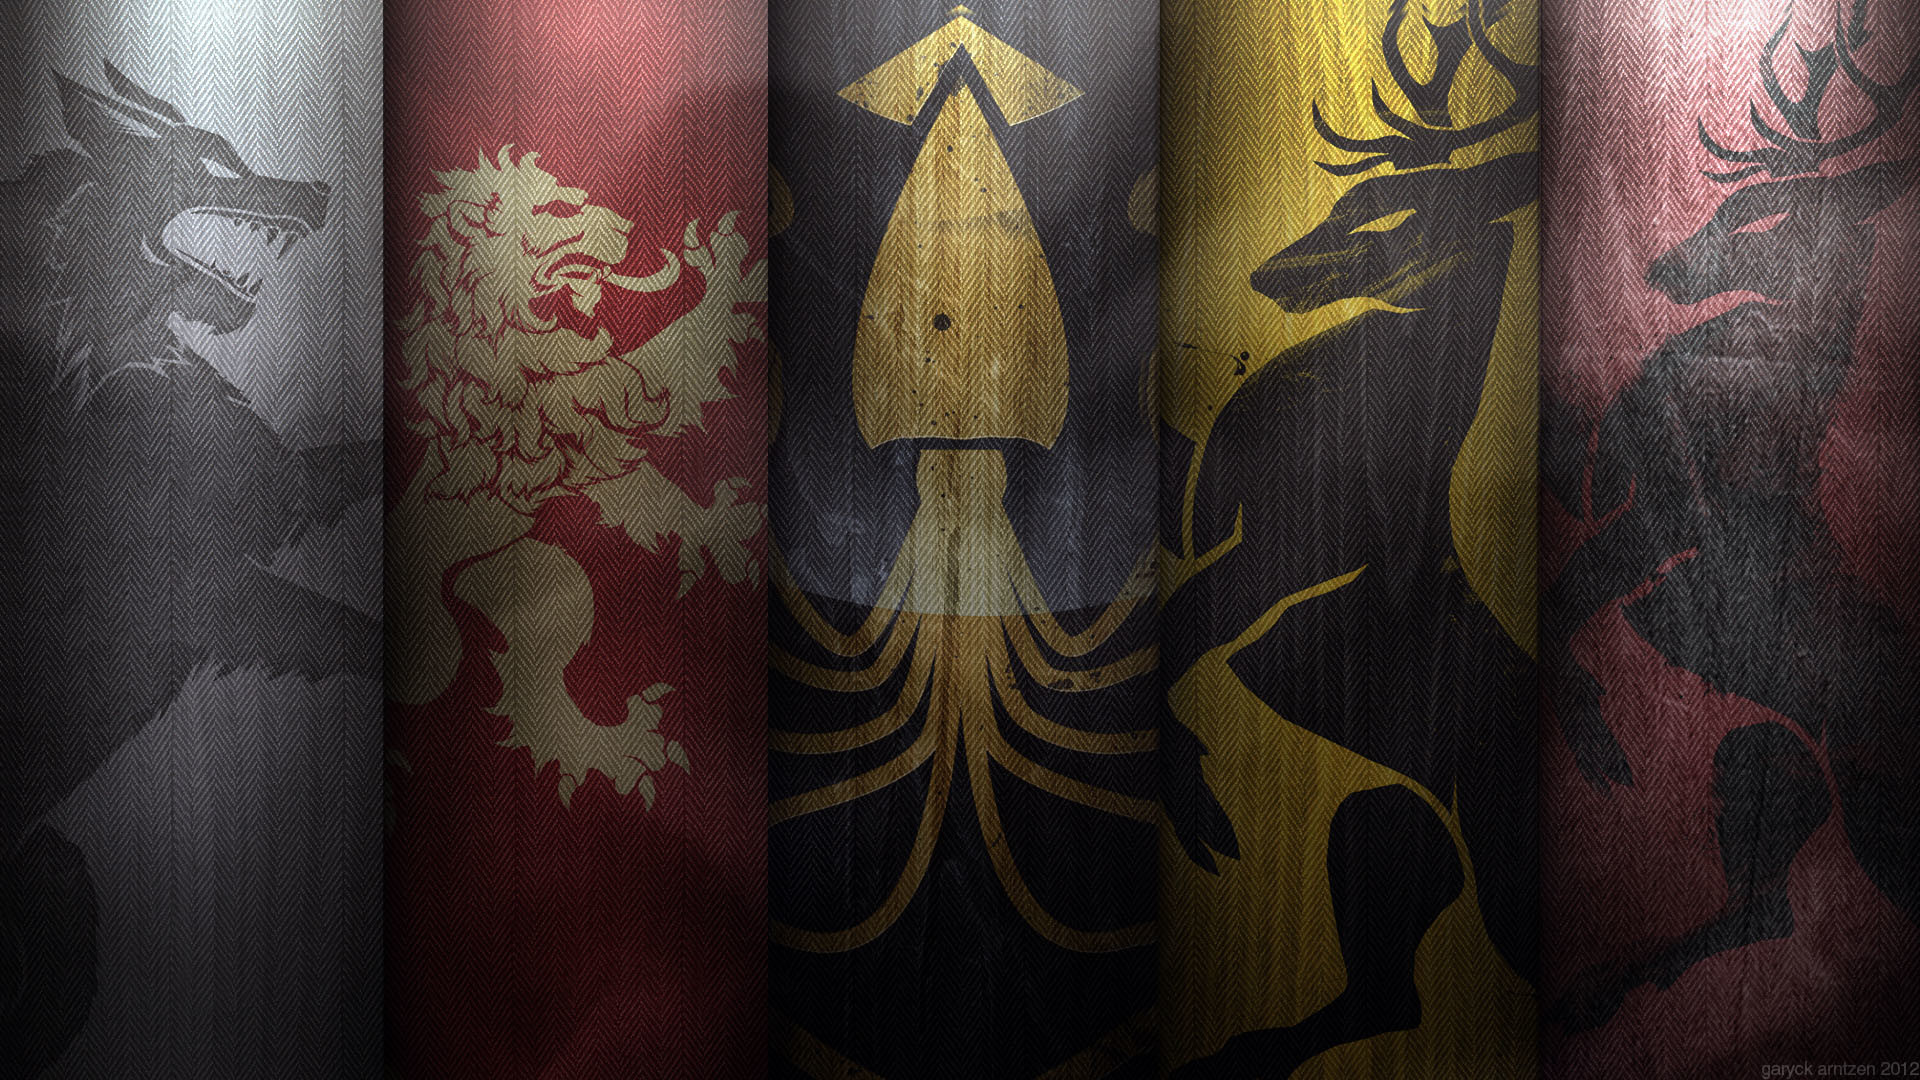 Game of Thrones House Flags wallpaper